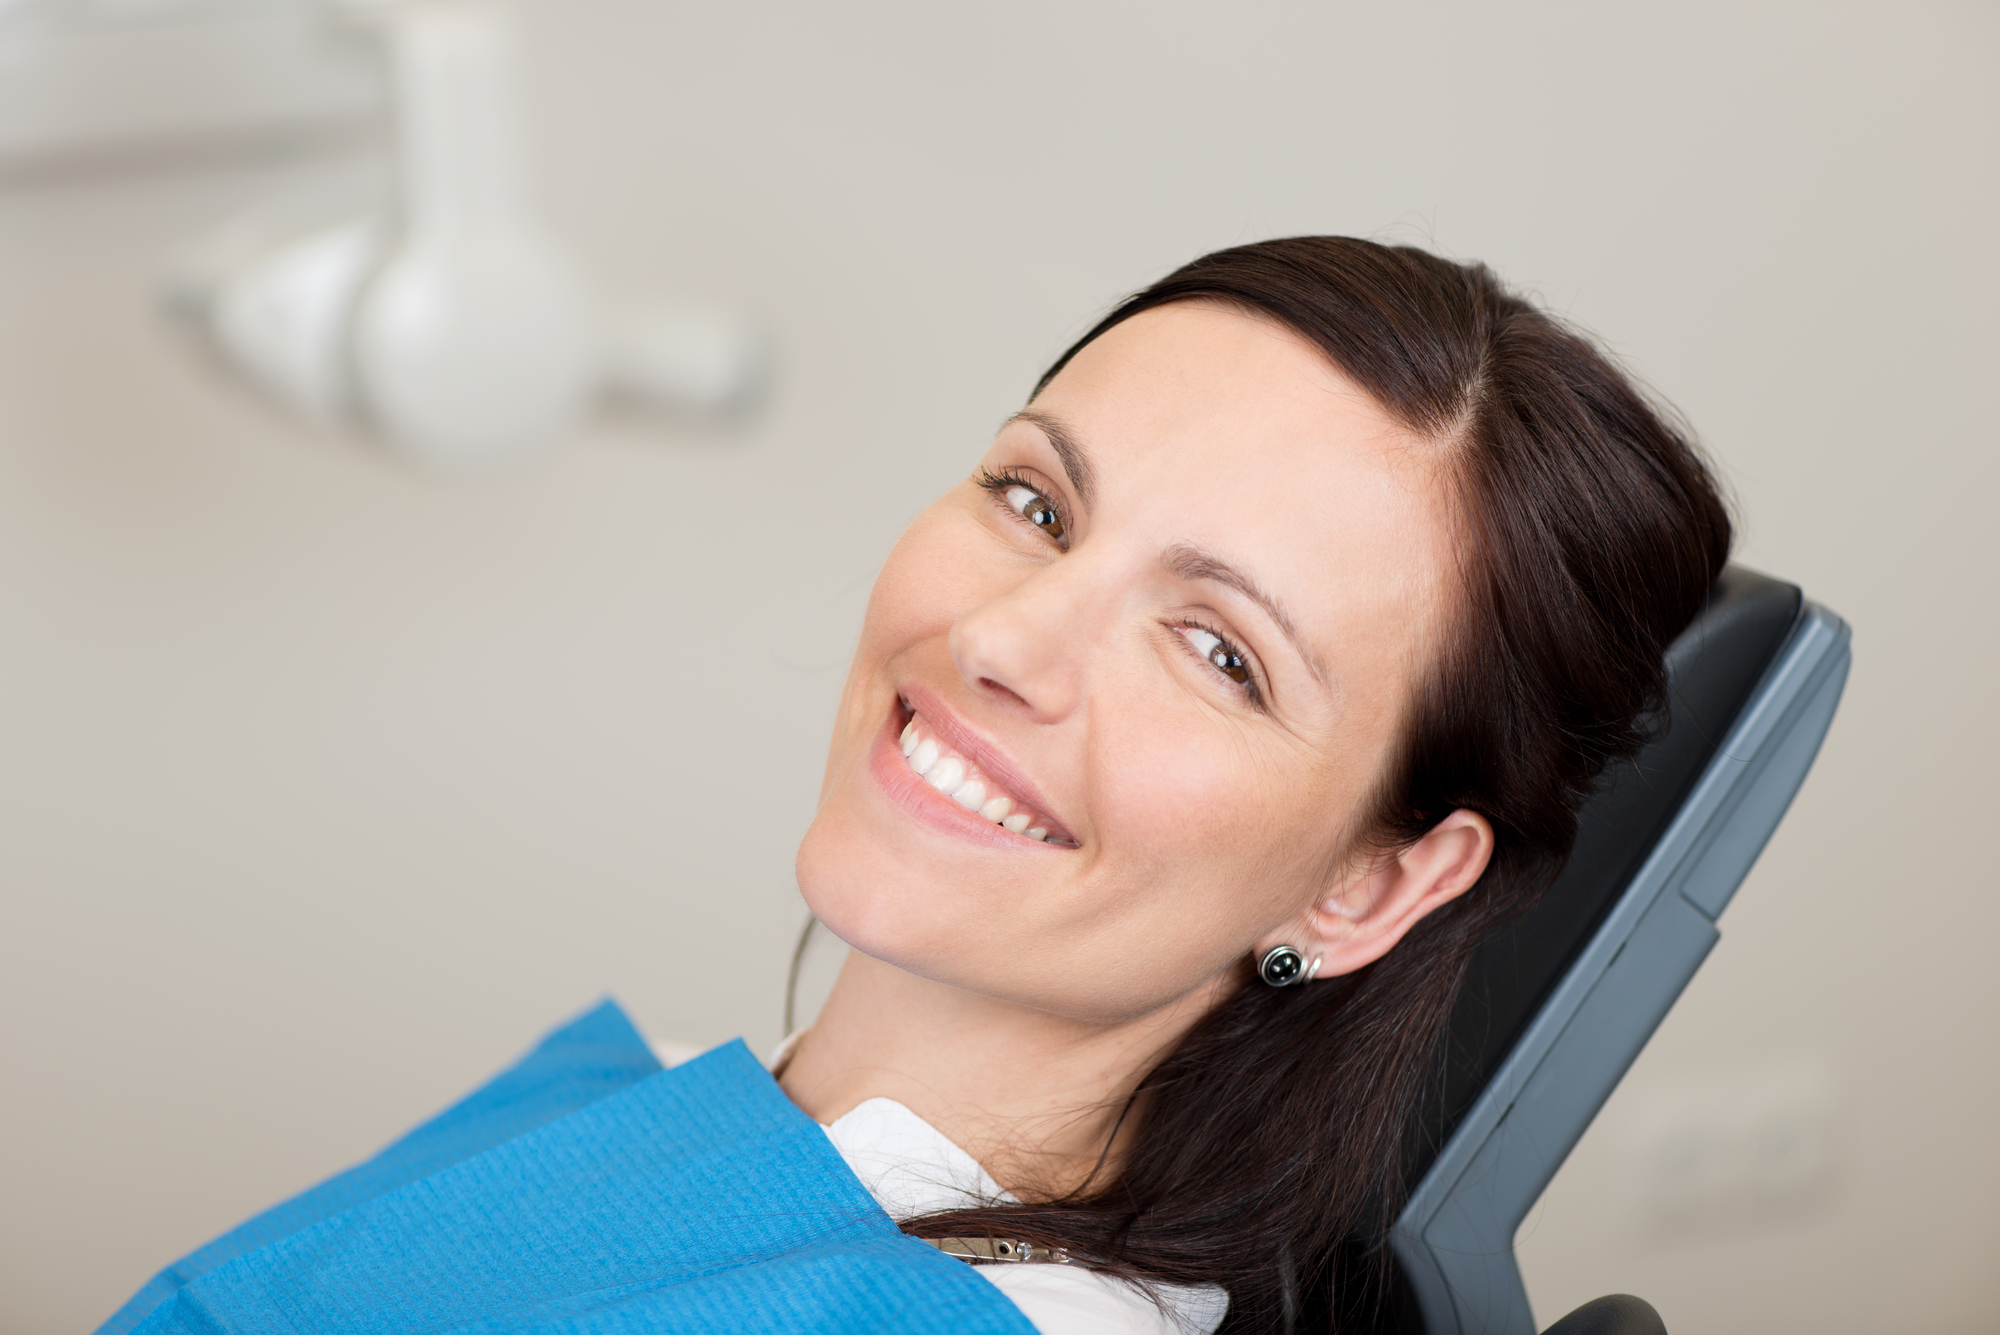 who offers the best oral surgery coral springs?